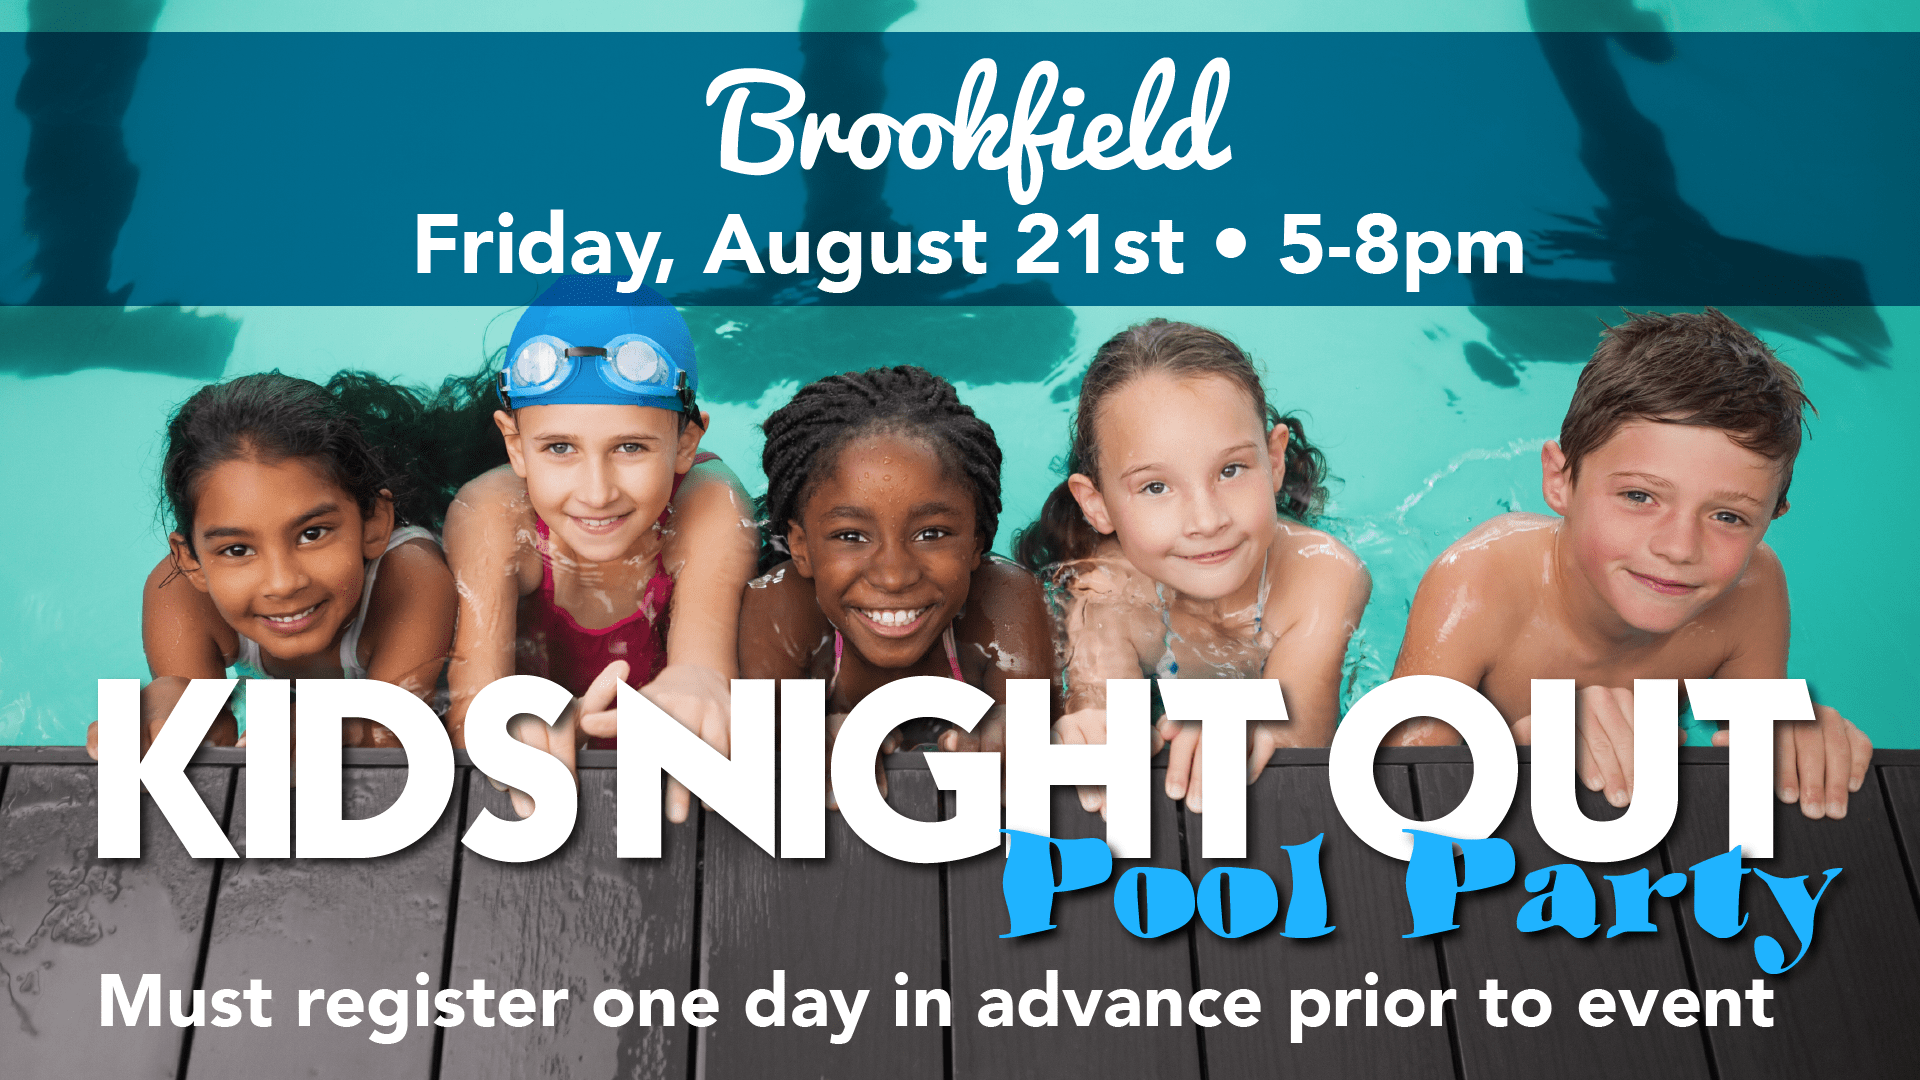 Kids Night Out Pool Party - Elite Brookfield - August 2020